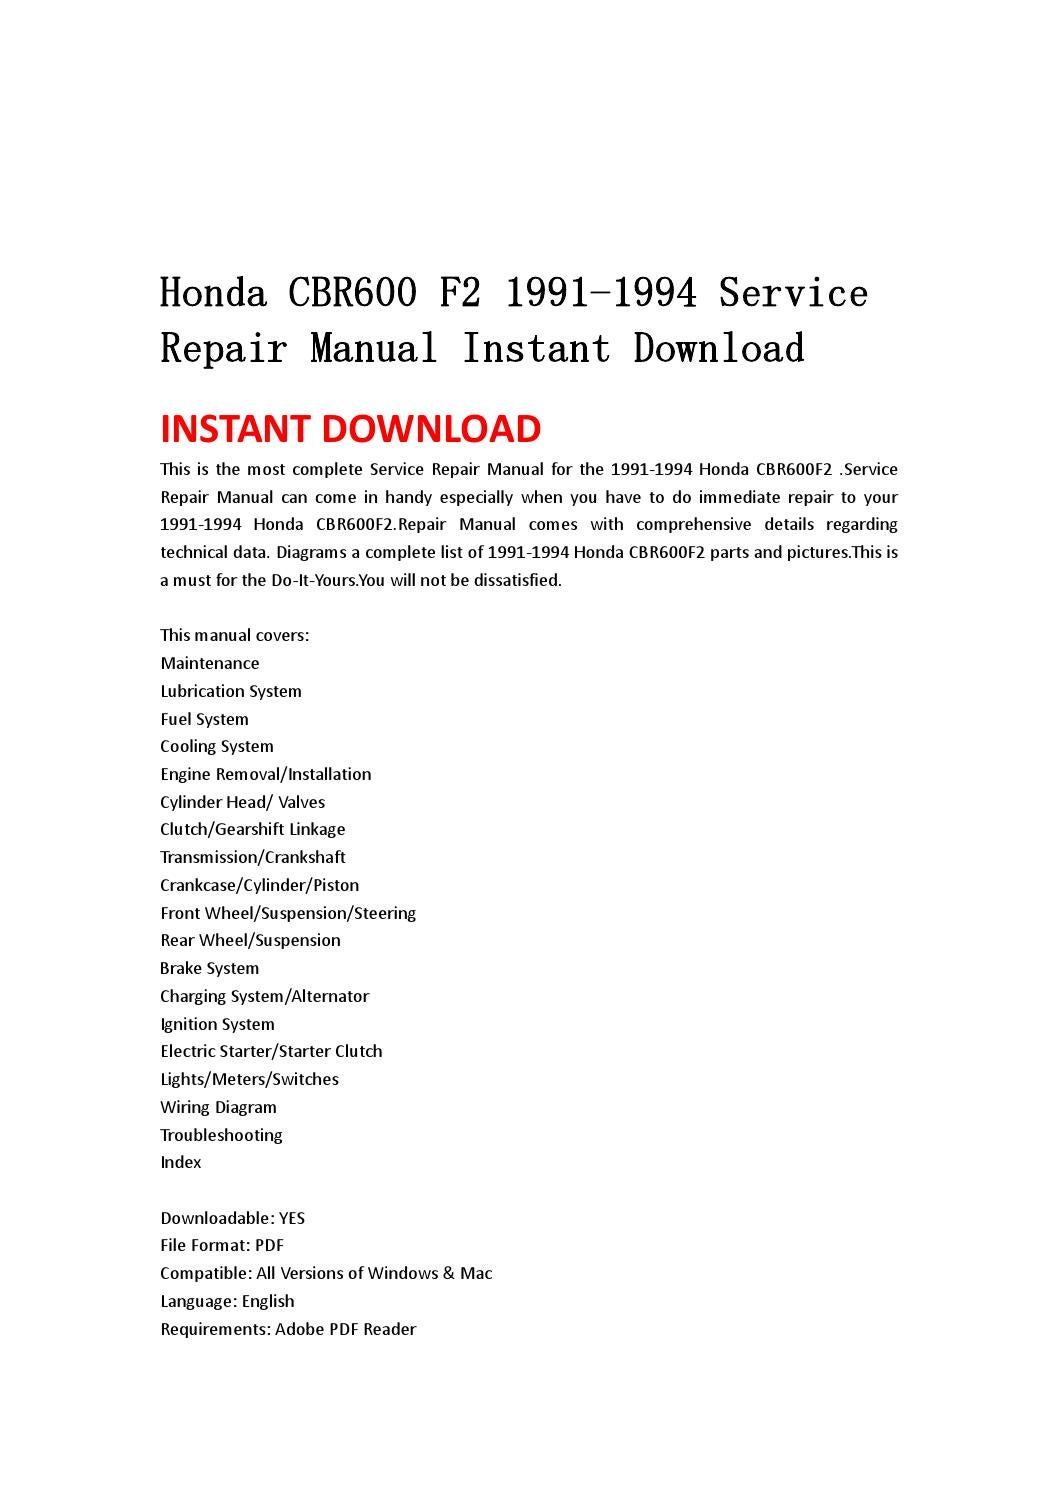 page_1 honda cbr600 f2 1991 1994 service repair manual instant download by